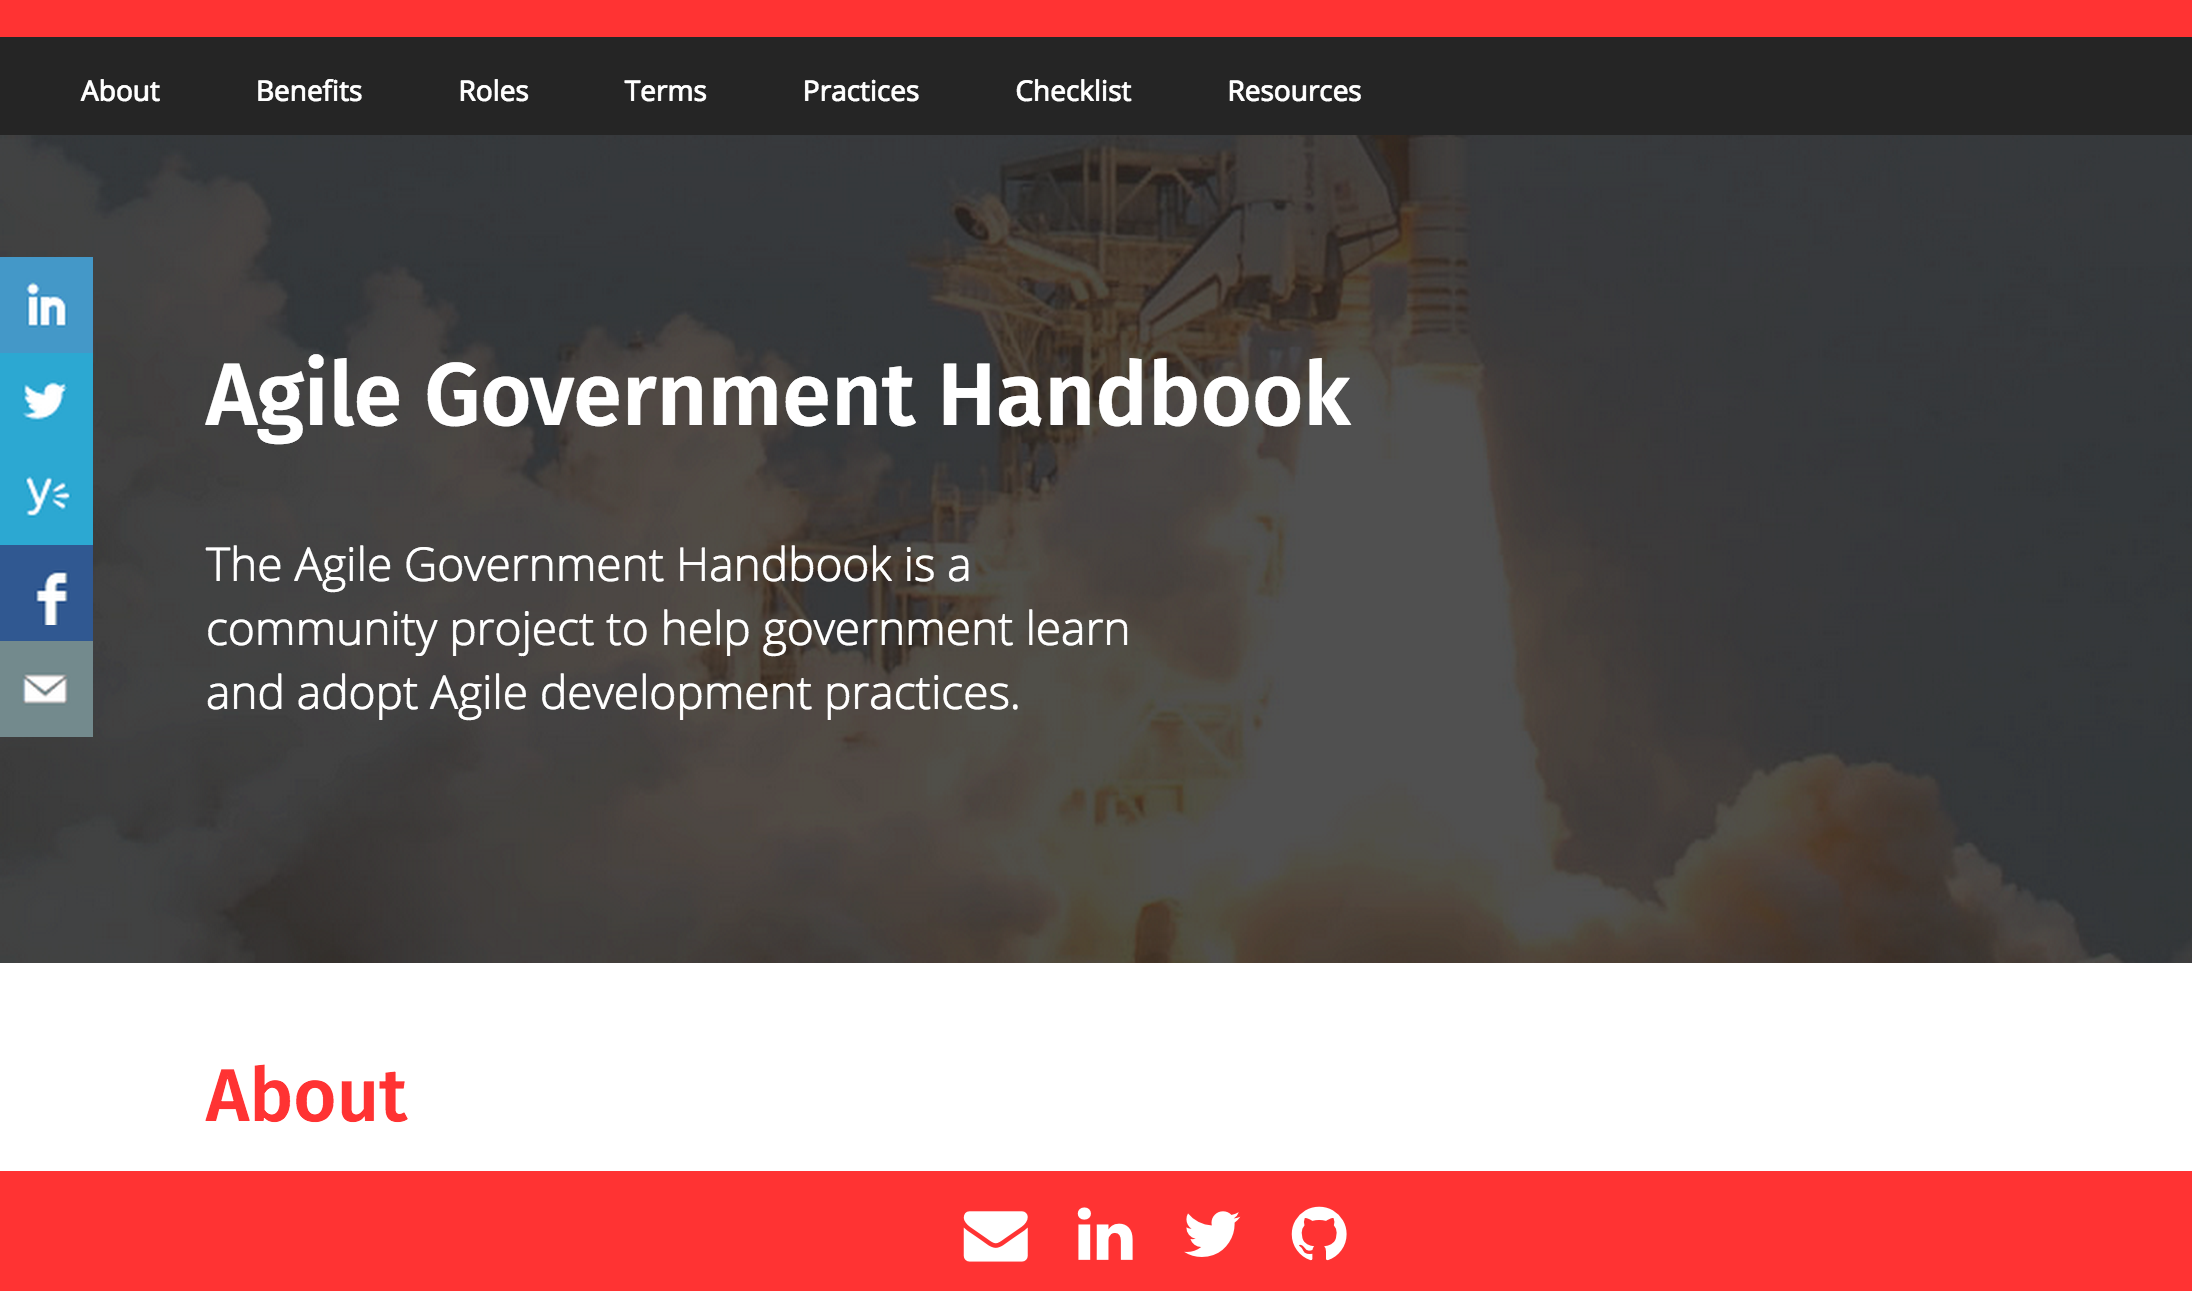 Agile Government Handbook